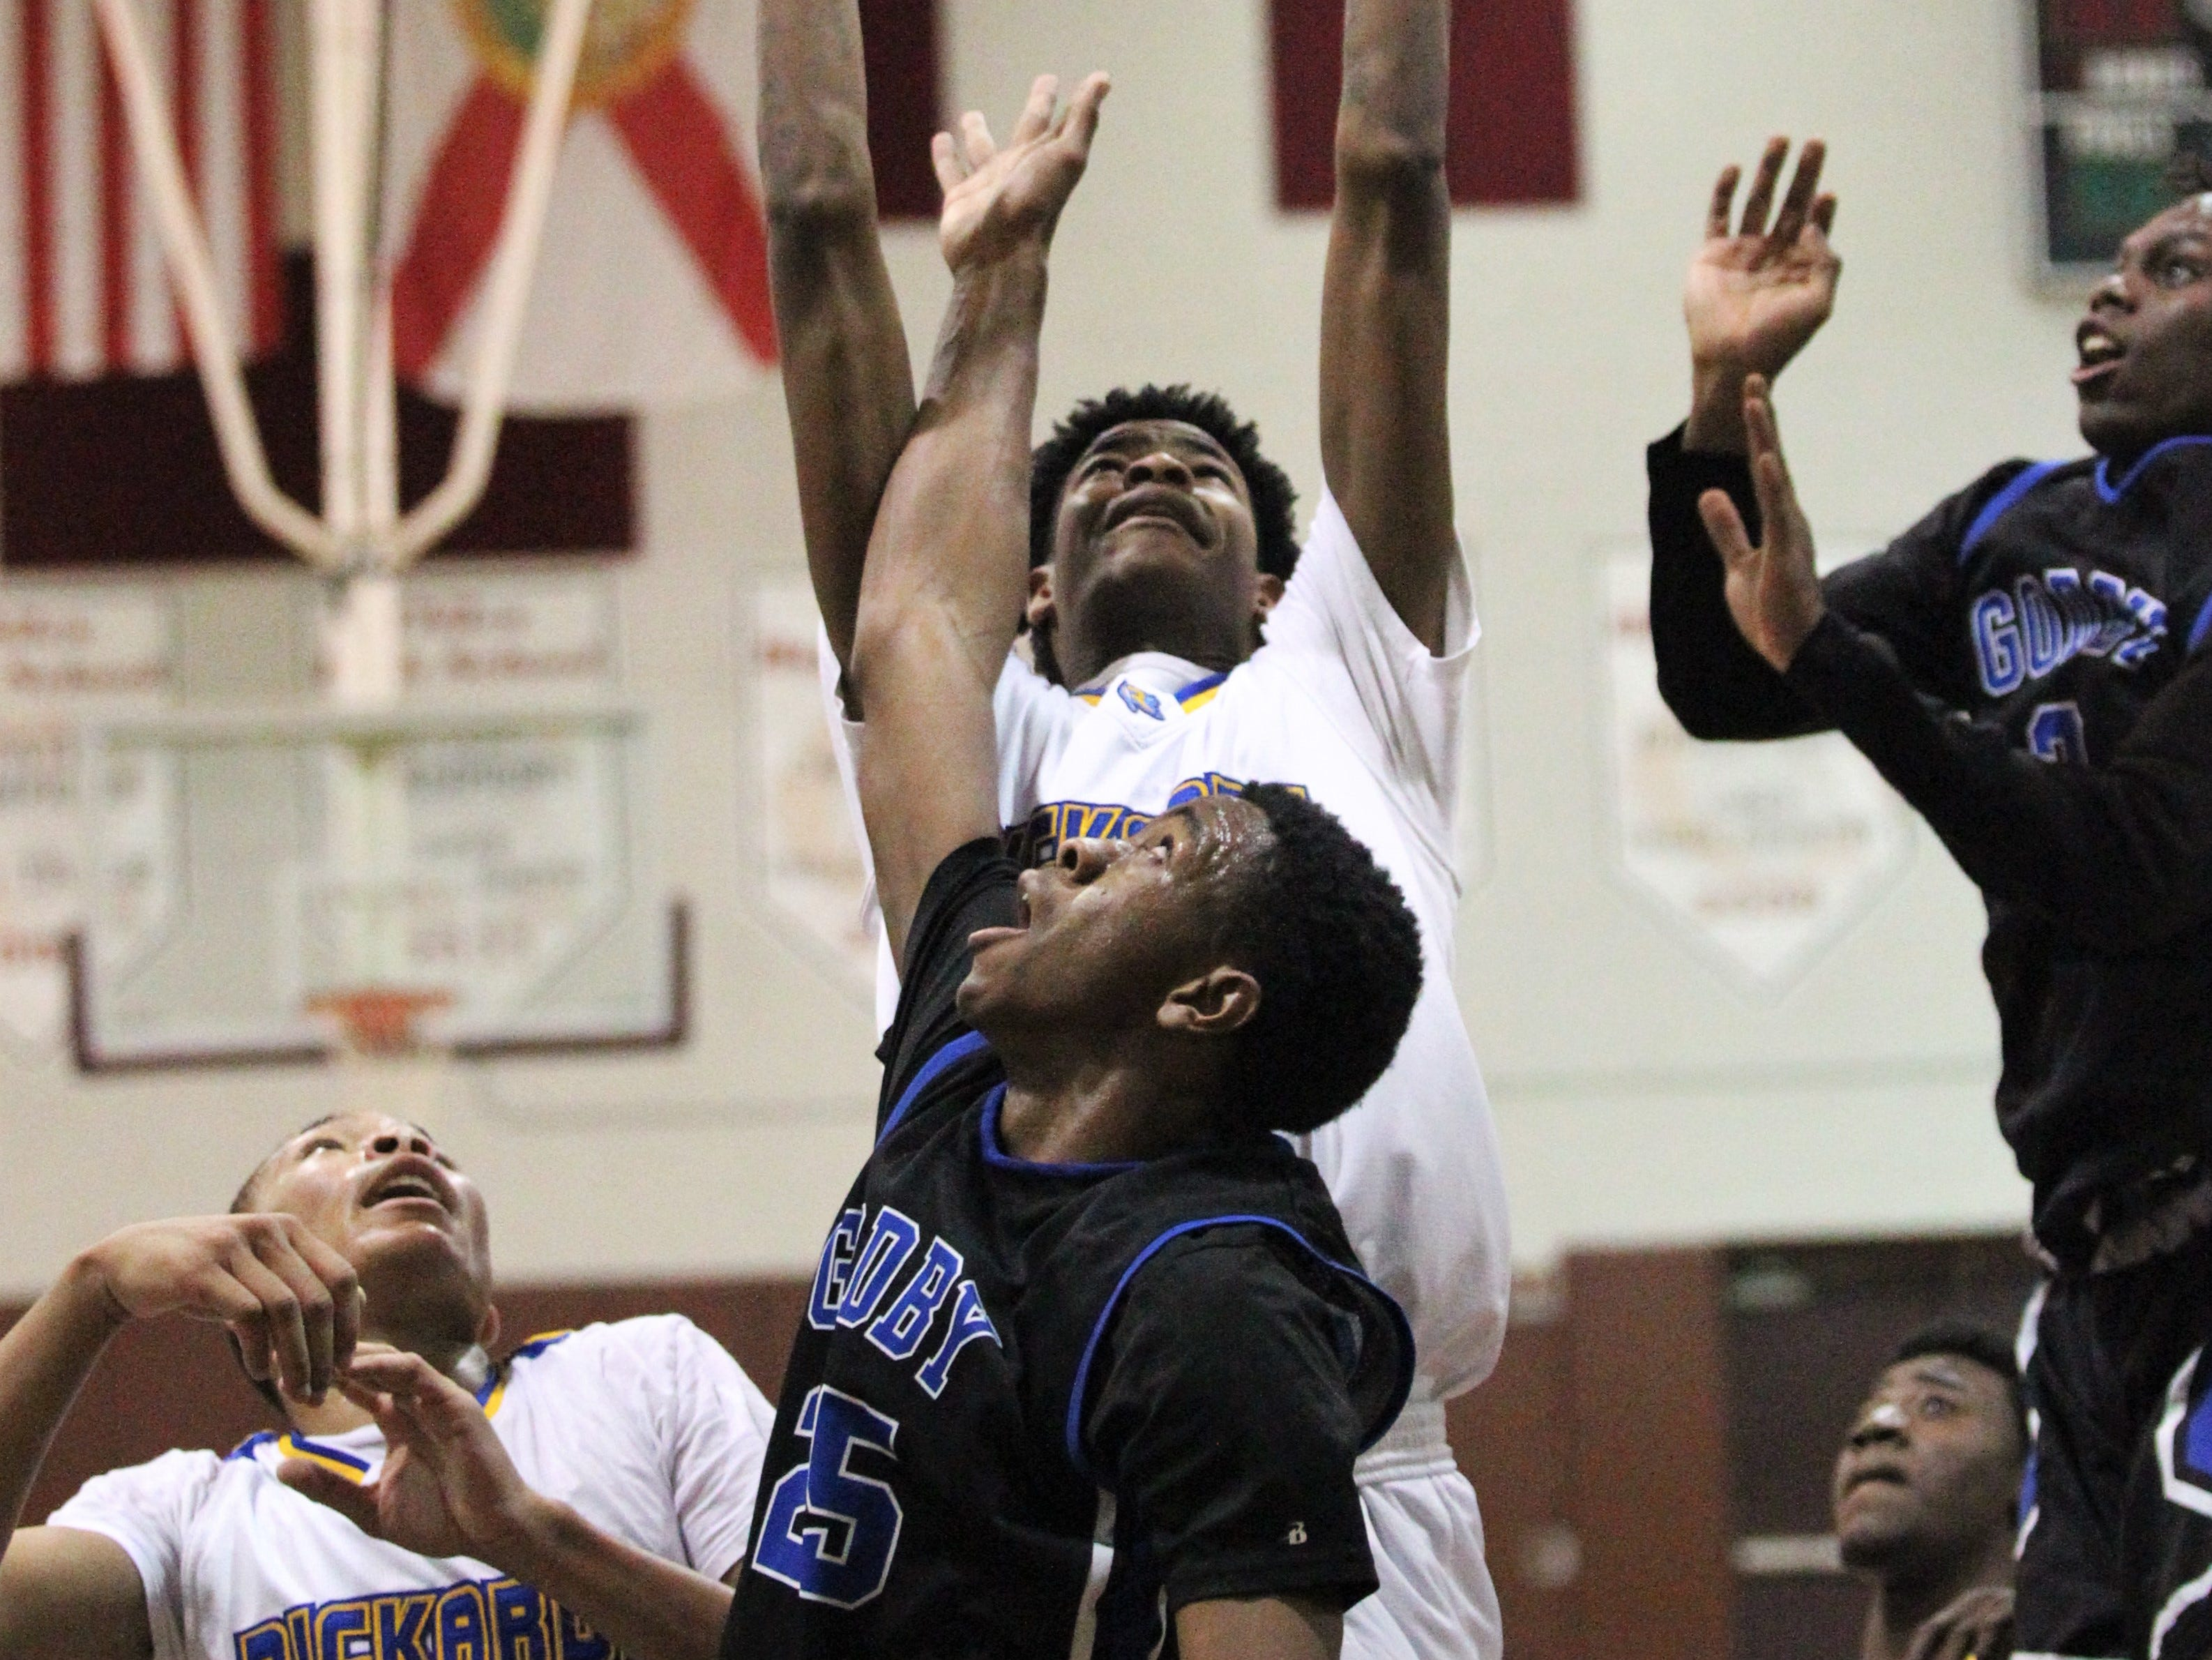 Rickards' Wynn Michael goes up for a rebound as Rickards' boys basketball team beat Godby 58-47 during the District 2-6A championship at Chiles on Feb. 15, 2019.